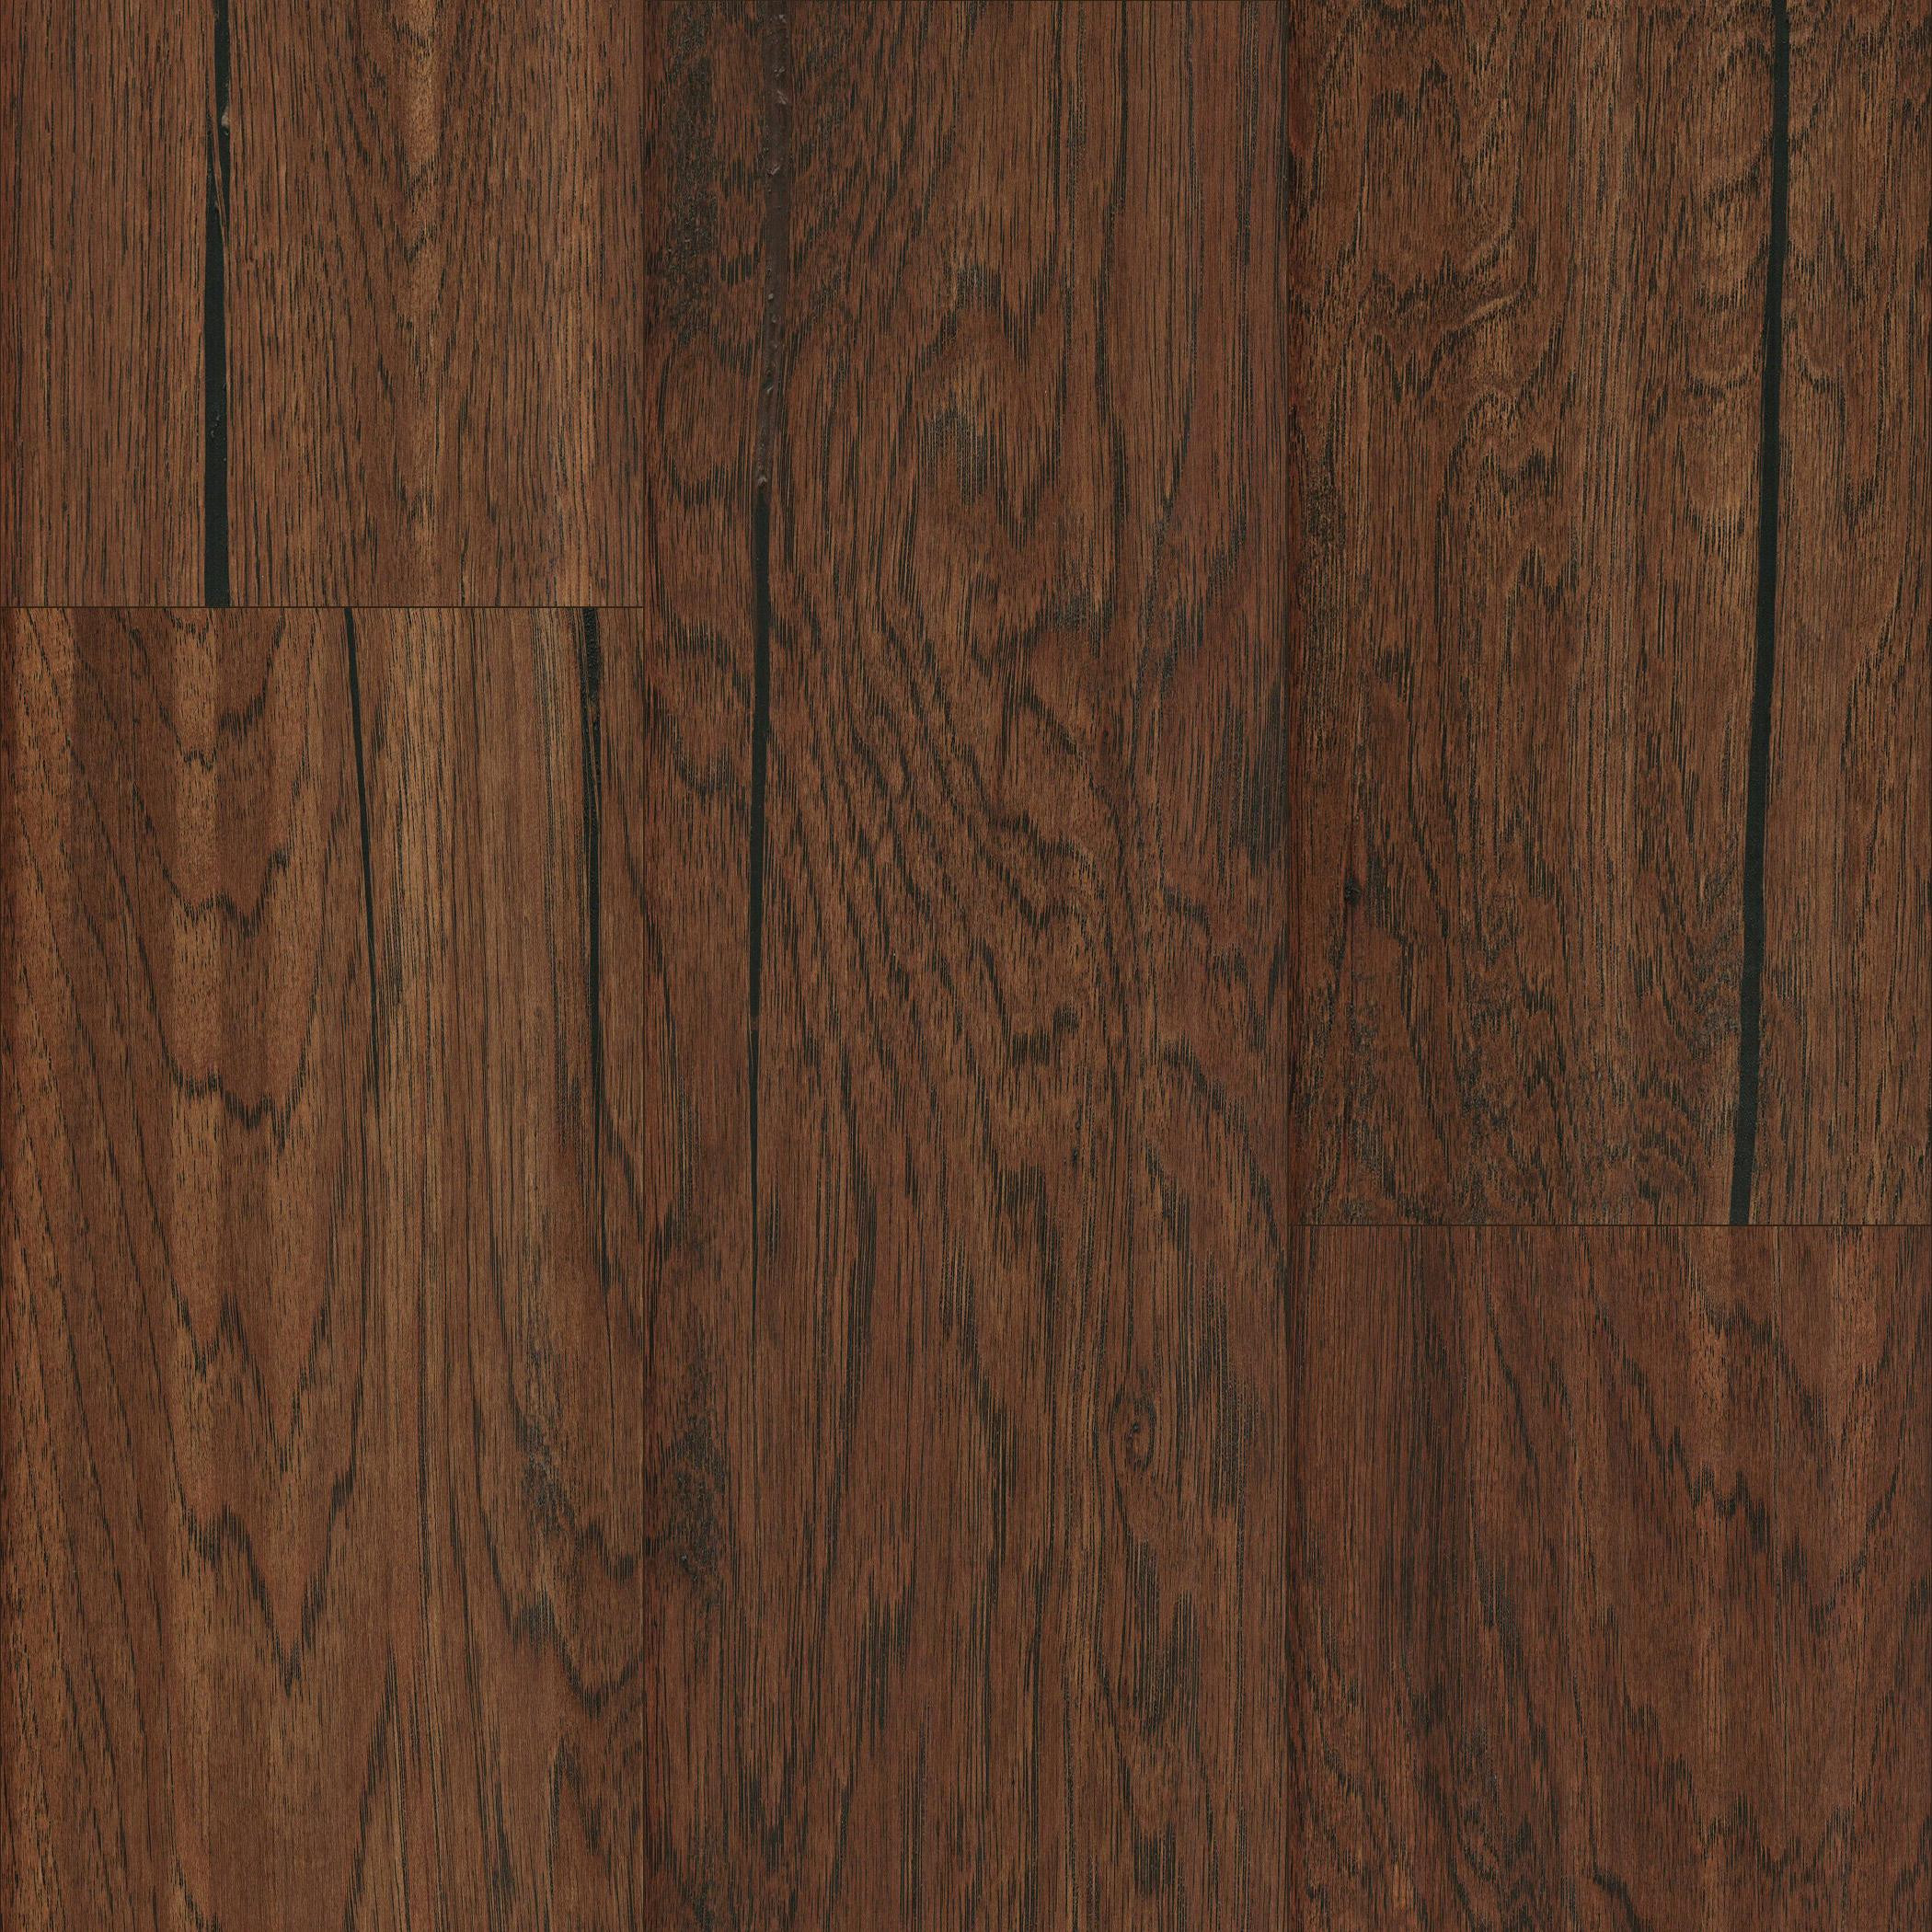 28 Lovable Hand Scraped Hardwood Vs Engineered Flooring 2021 free download hand scraped hardwood vs engineered flooring of mullican san marco hickory provincial 7 sculpted engineered throughout mullican san marco hickory provincial 7 sculpted engineered hardwood fl